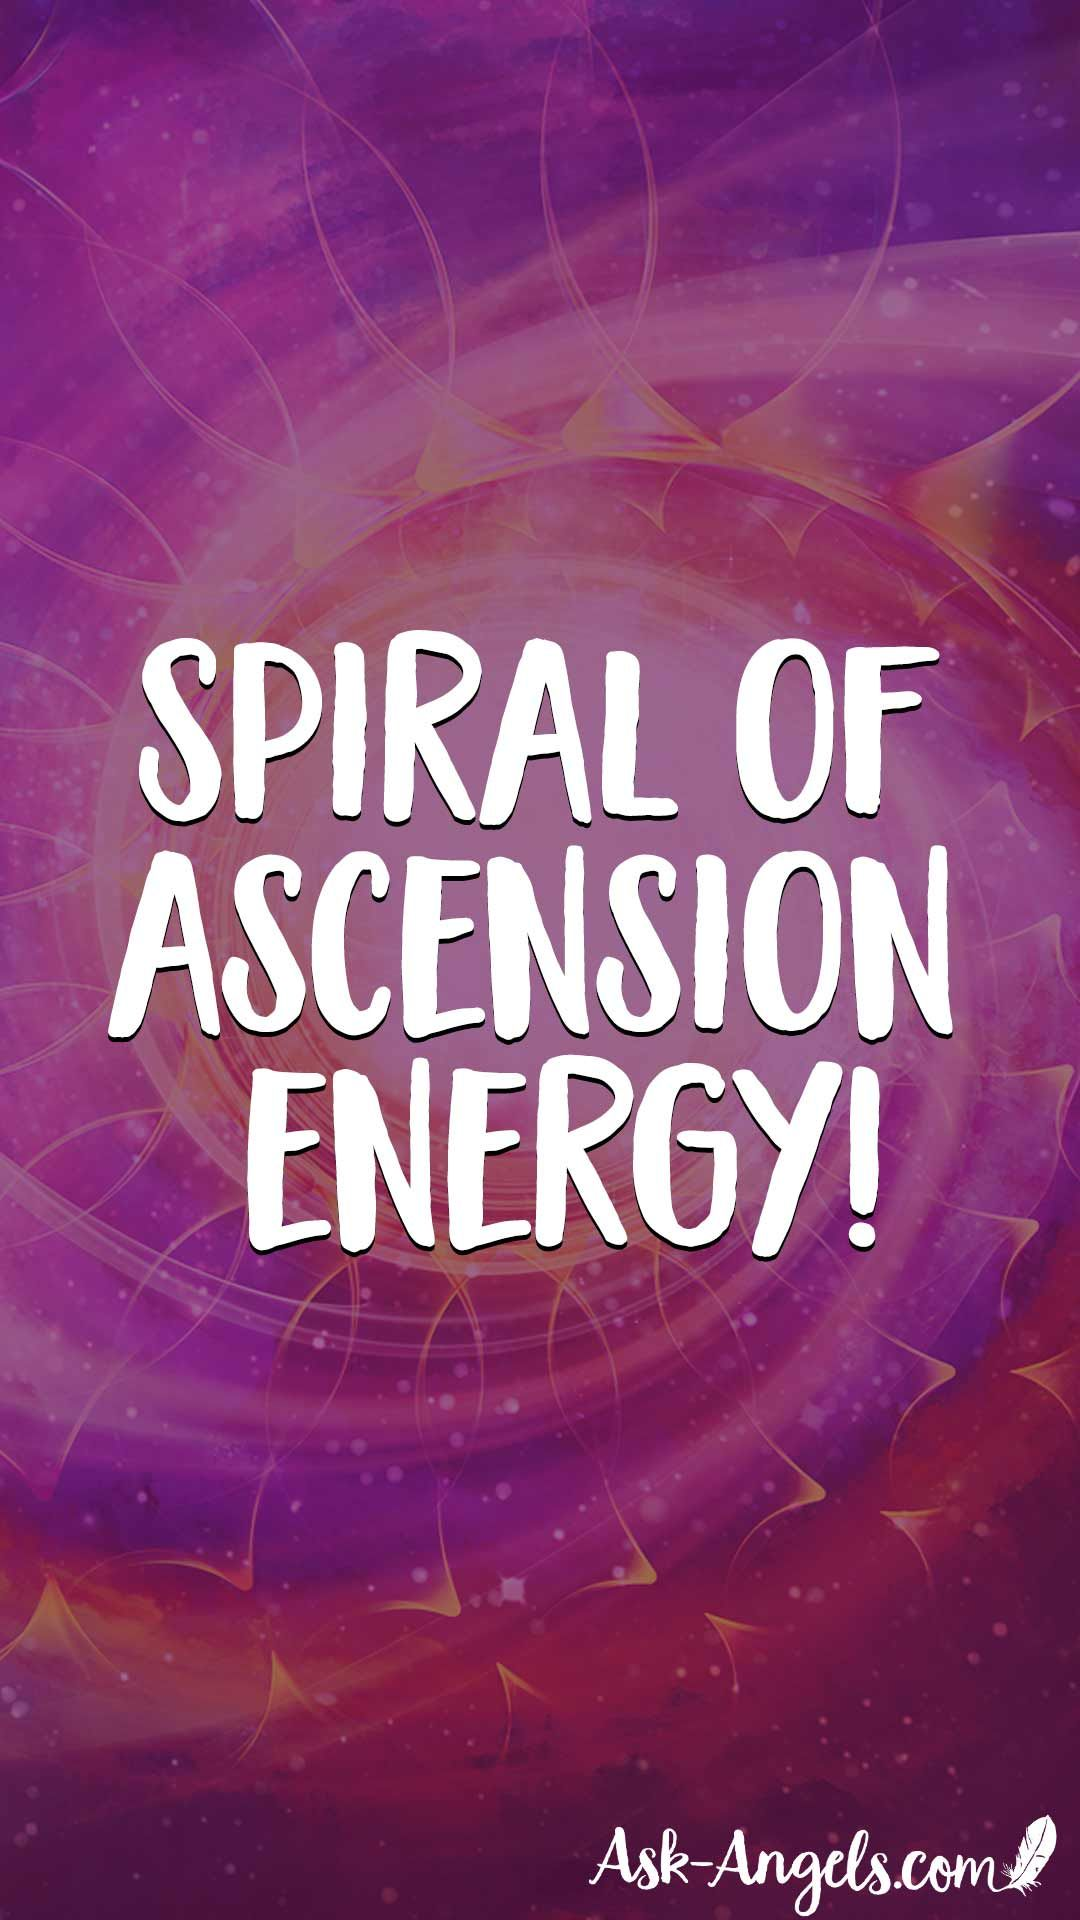 The Event Spiral Of Ascension Energy Ask Angels Com Ascension Spiritual Ascension Energy